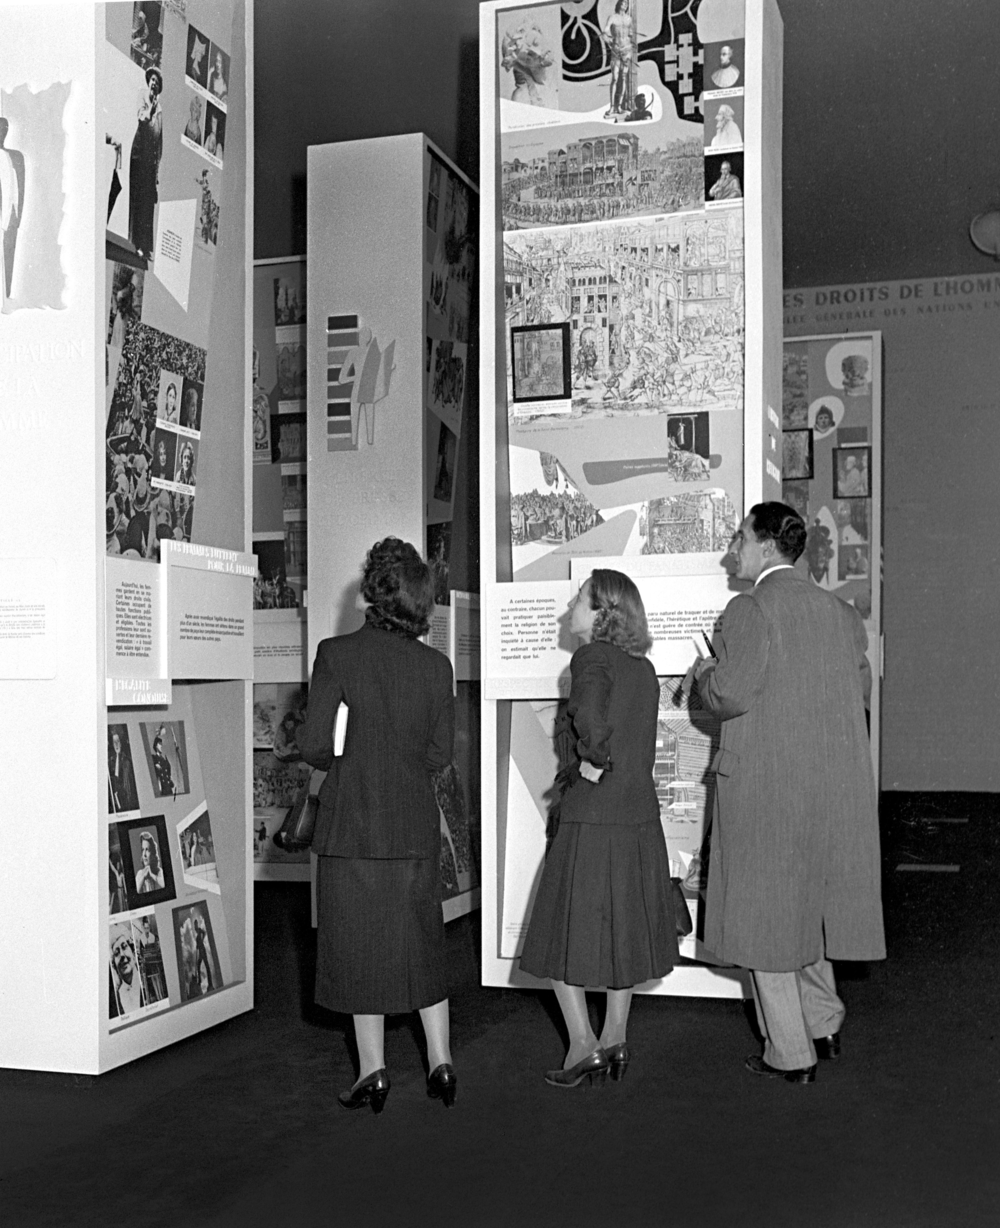 At the UNESCO exhibition to mark the first anniversary of the United Nations Universal Declaration of Human Rights, Musée Galliéra, Paris, October 1949.